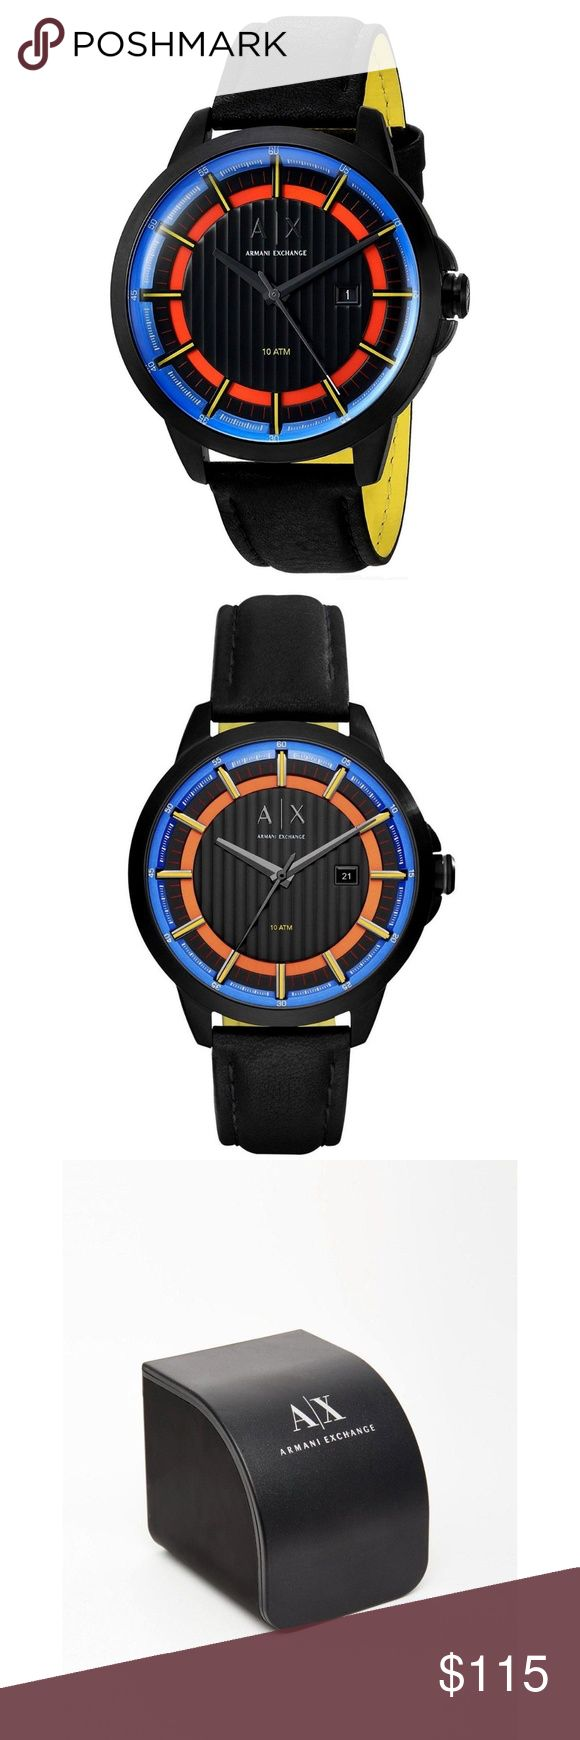 NWT Armani Exchange Men's Black Leather Watch 100% Authentic Armani Exchange!  Buy with confidence!  • MSRP: $160.00 • Style: AX2265  Description: With sleek orange-and-blue details, a textured dial, a date window, and a black leather strap, this black IP Armani Exchange watch doesn't follow trends, it sets them.  Features:  • Case Size: 44 mm • Case Thickness: 13 mm • Band Width: 18 mm • Water Resistant: 5 ATM • Warranty: 2 Year International • Yellow on back of the strap • Origin: Imported…